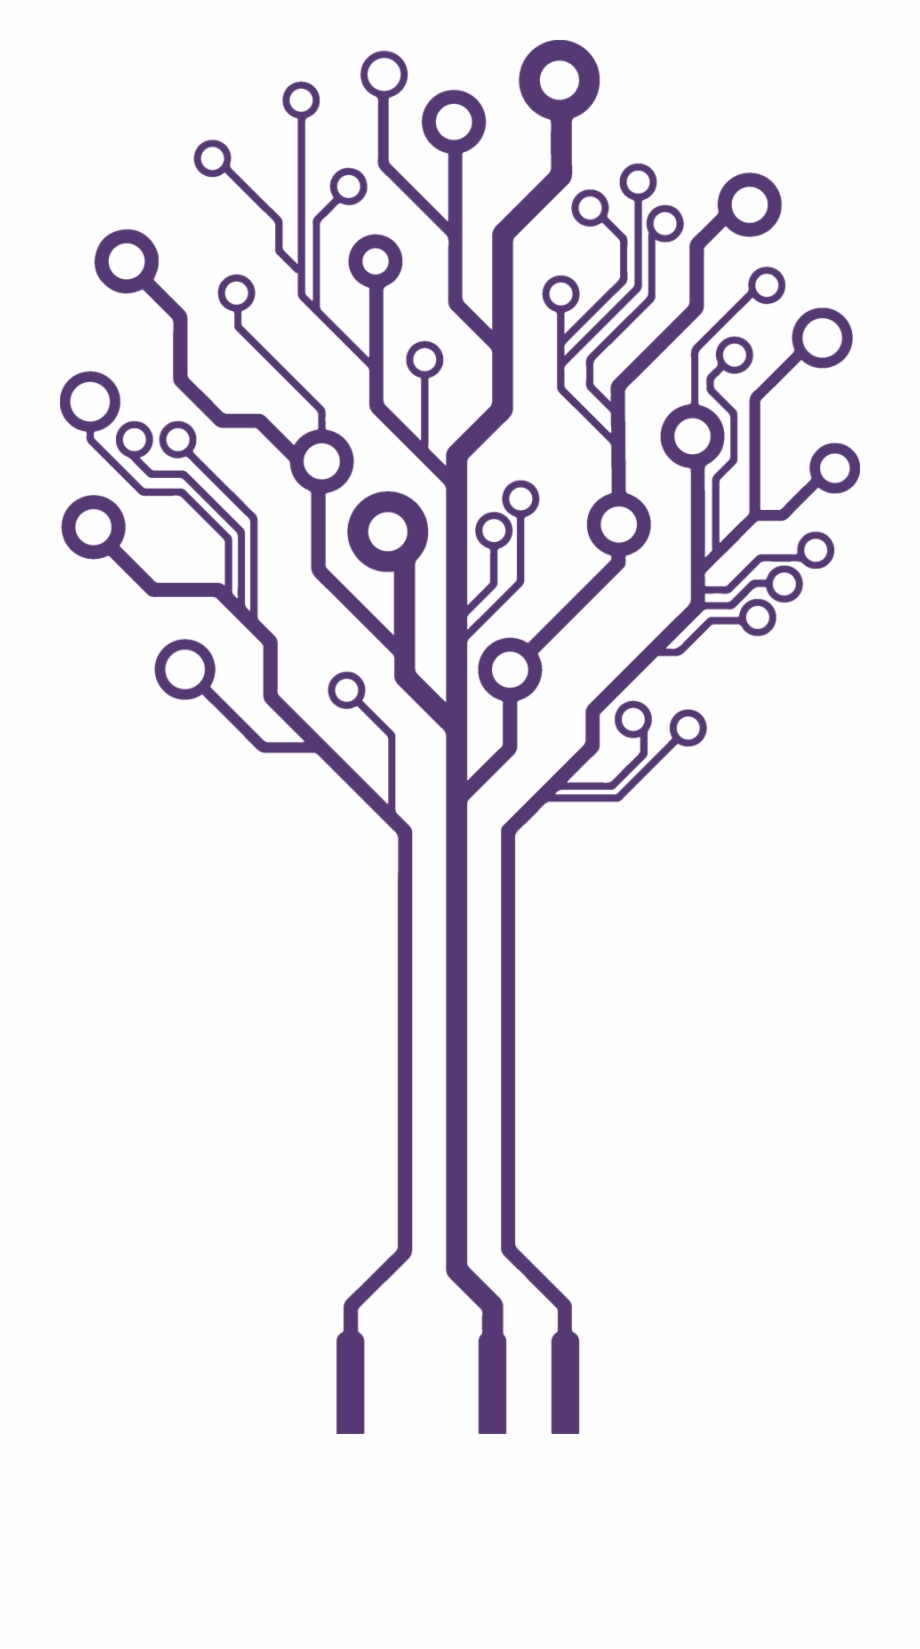 Circuit Tree Png Circuit Board Tree Vector.